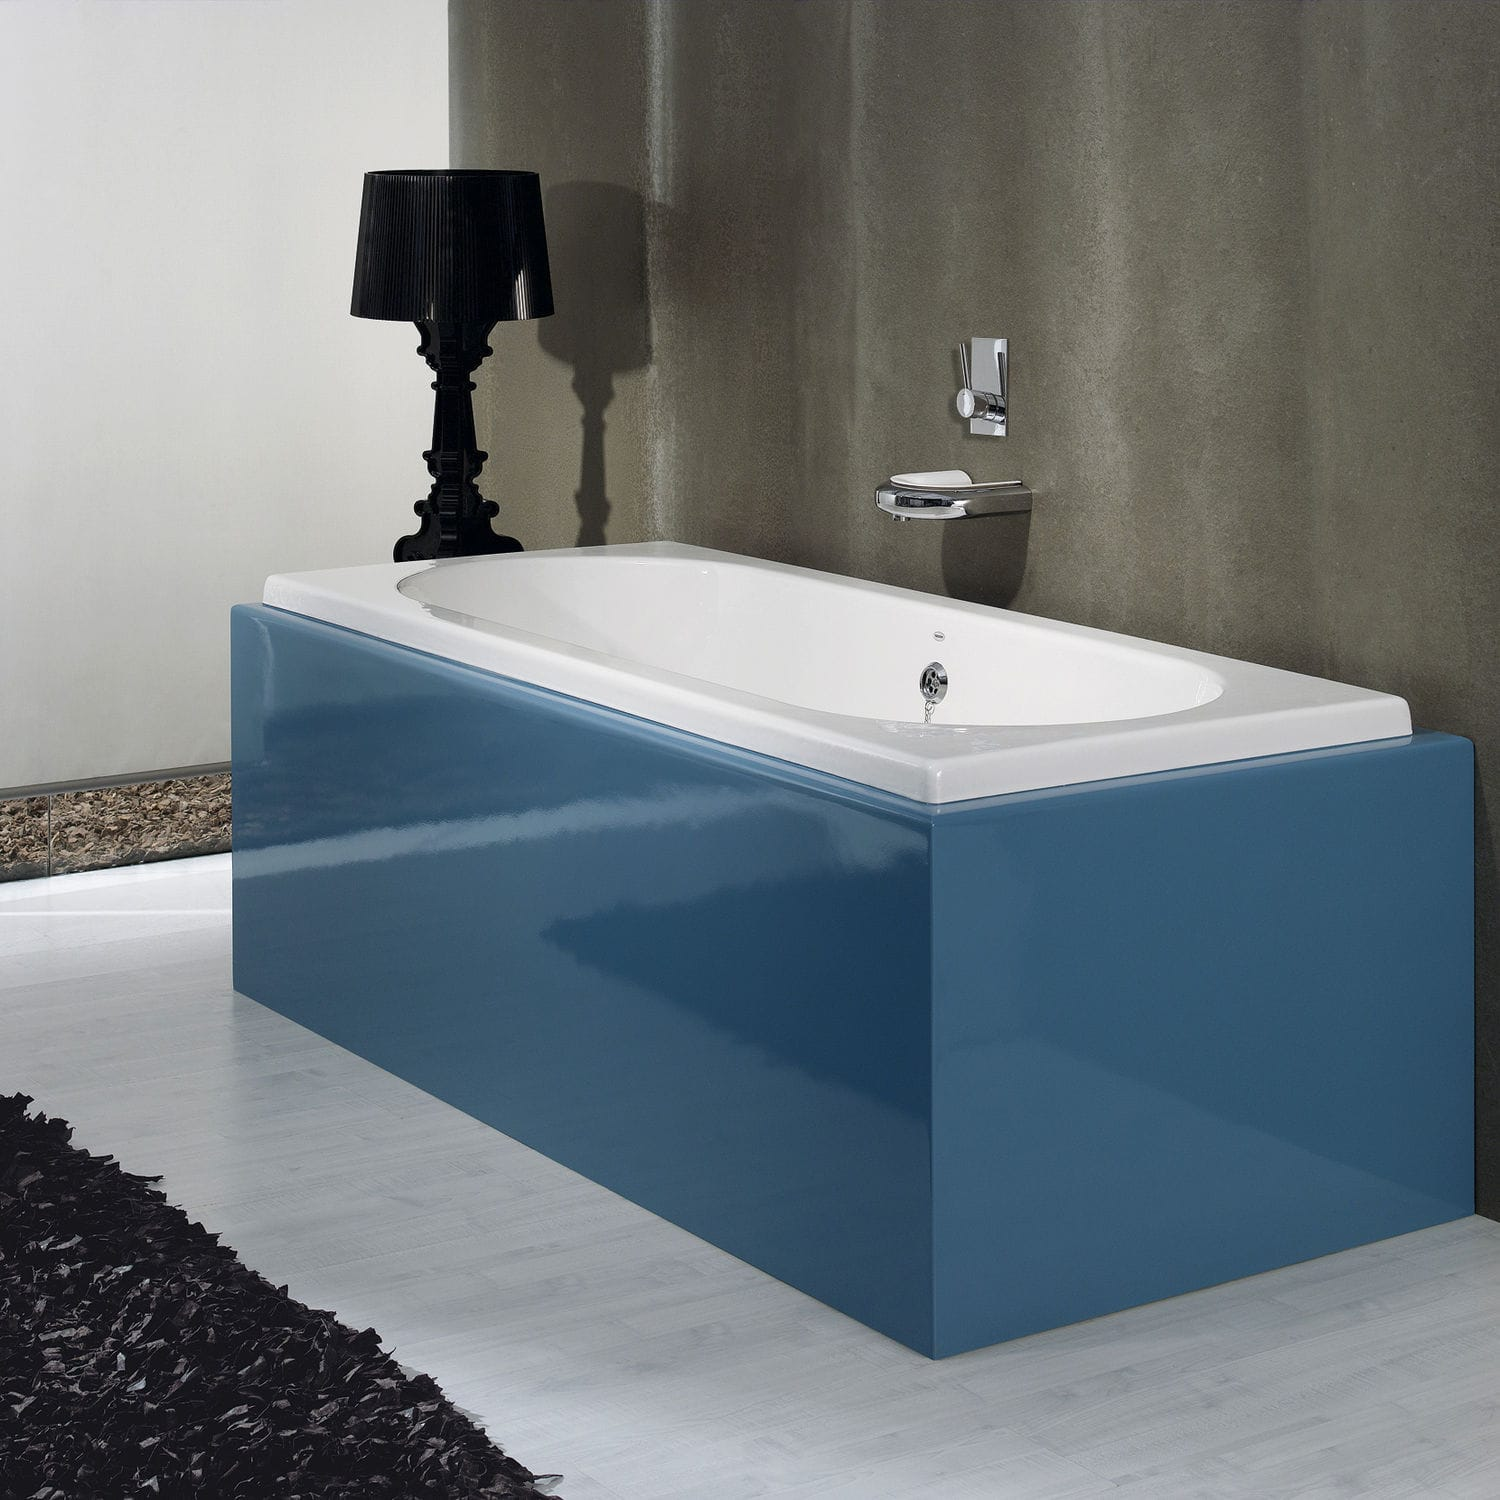 Cast iron bathtub - CAPRICE - RECOR